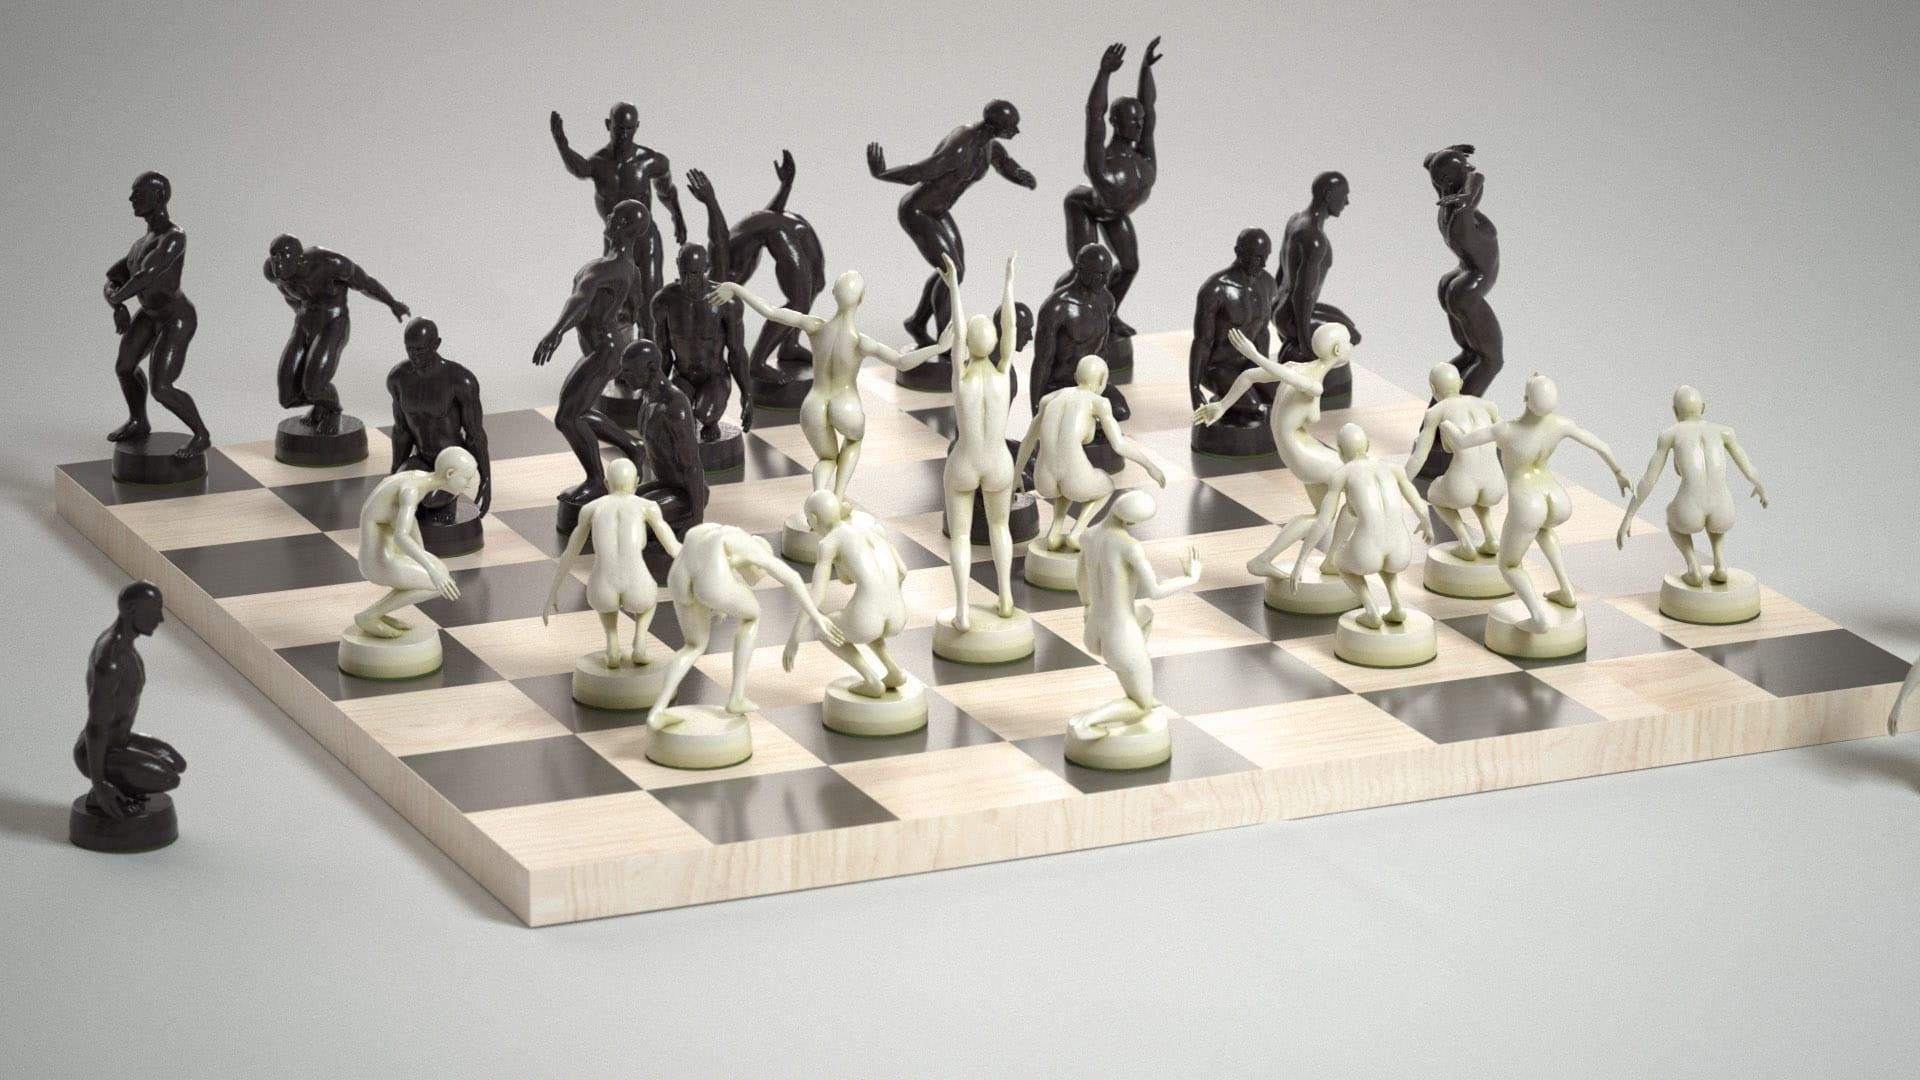 Premium Edition Chess Set